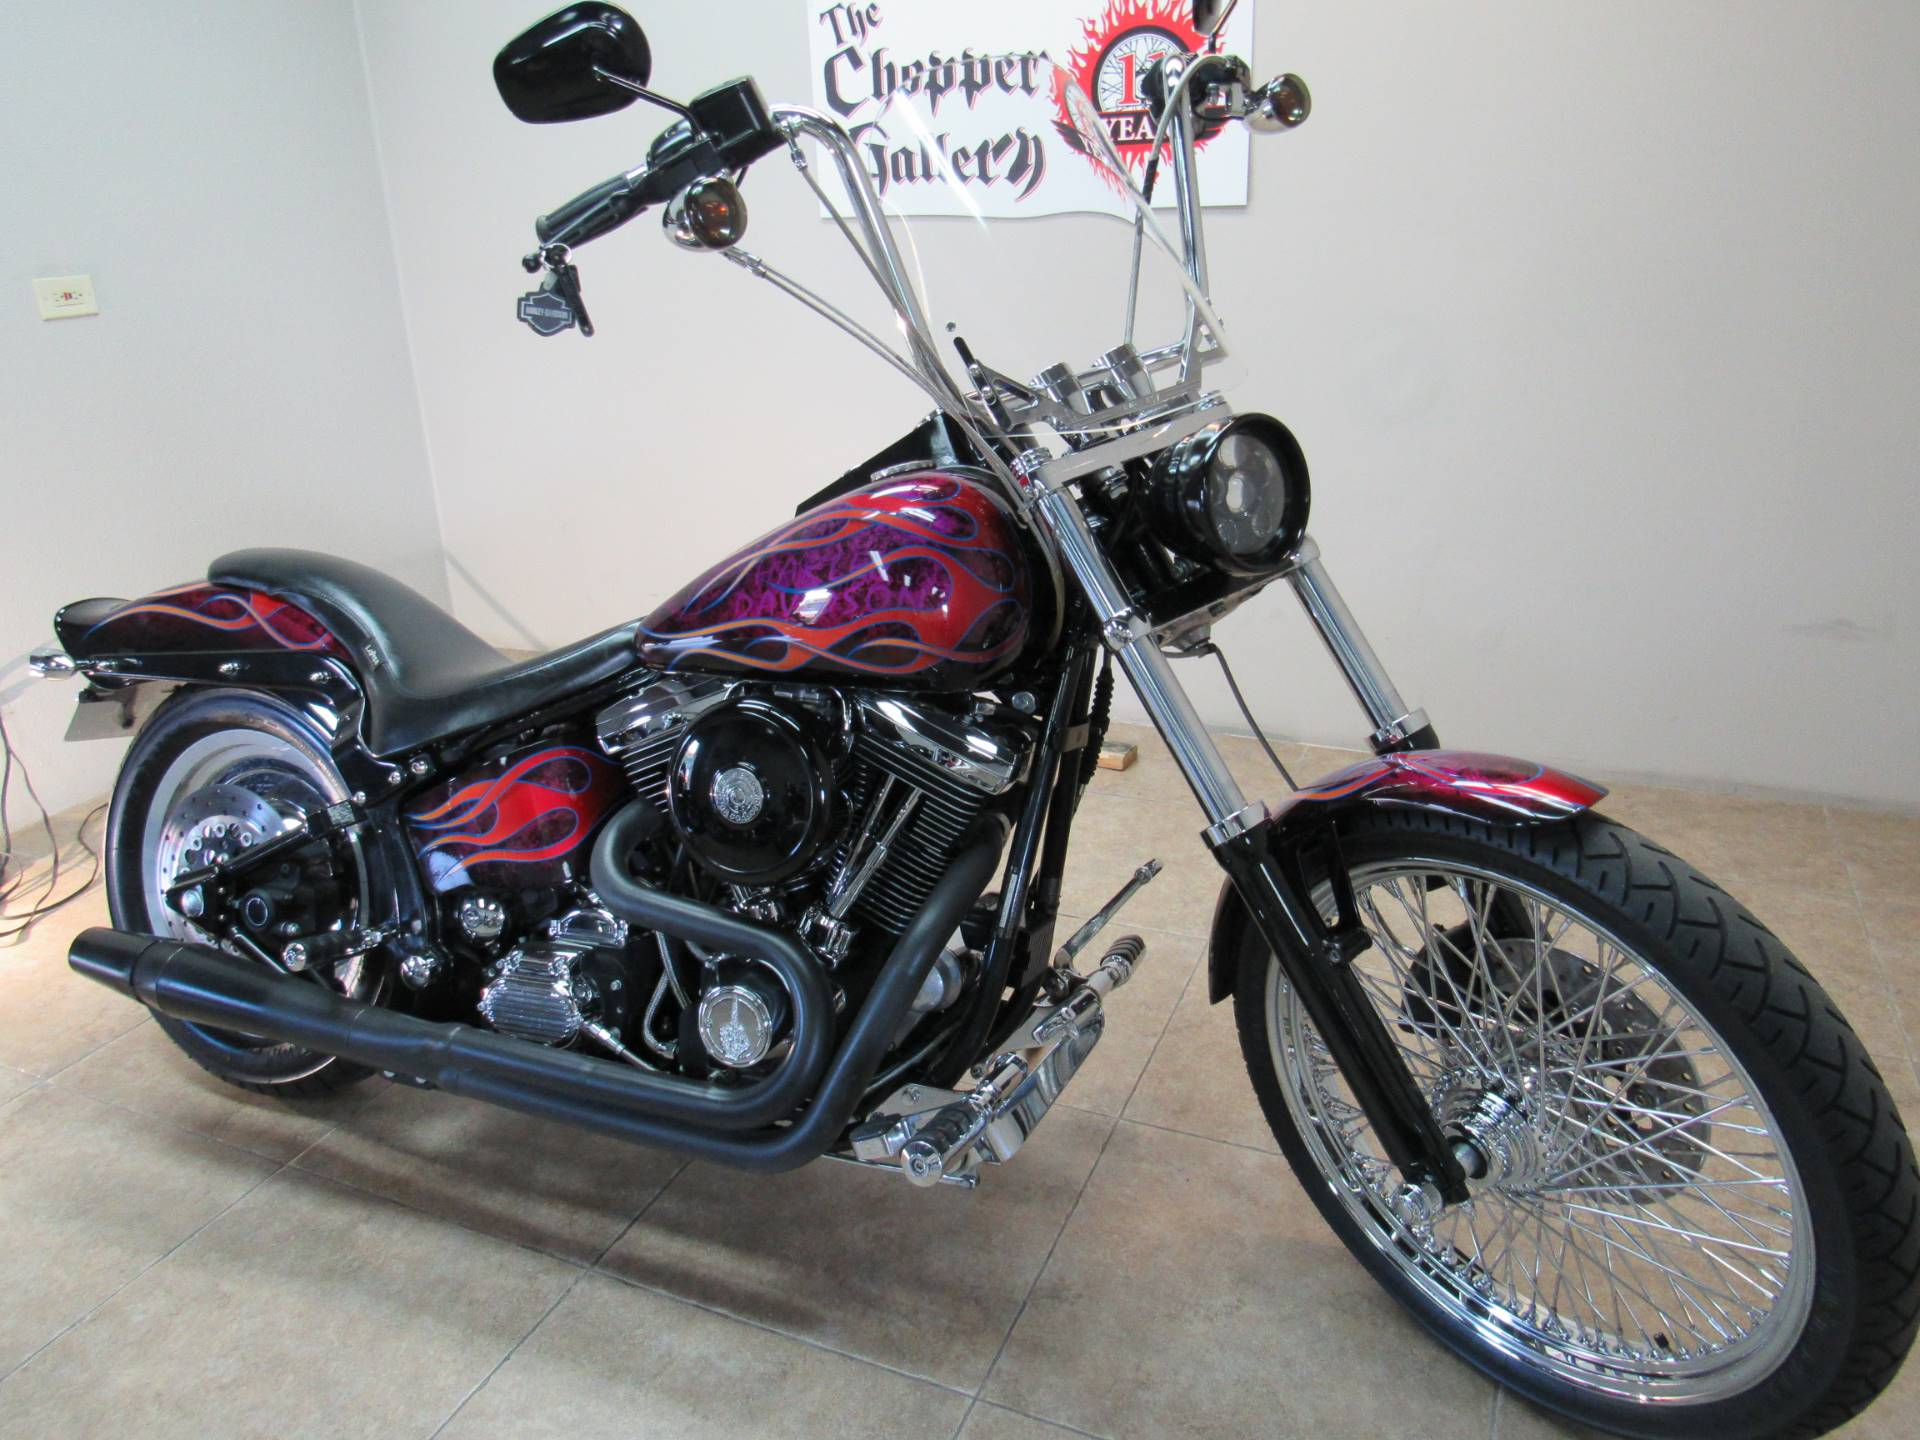 1996 Harley-Davidson softail custom in Temecula, California - Photo 36